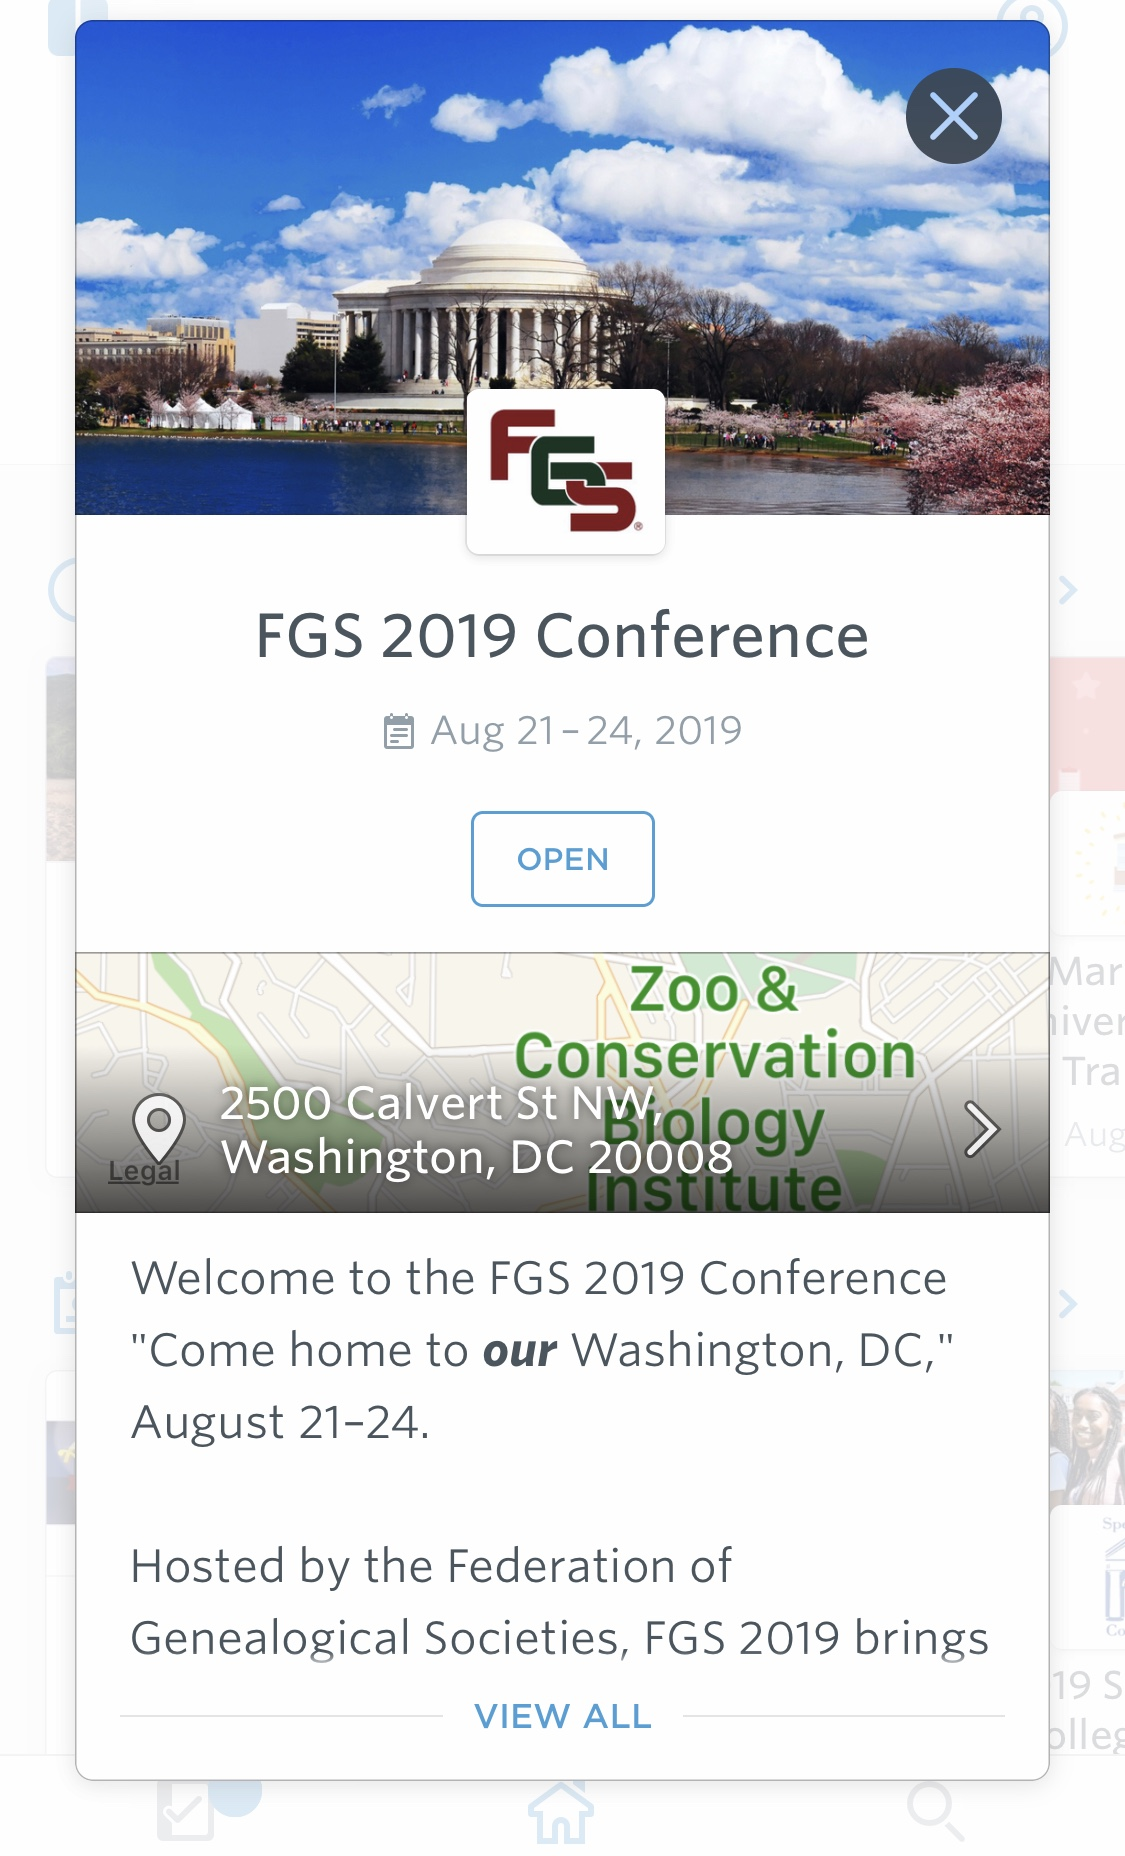 FGS 2019 Conference App Is Available - Federation of